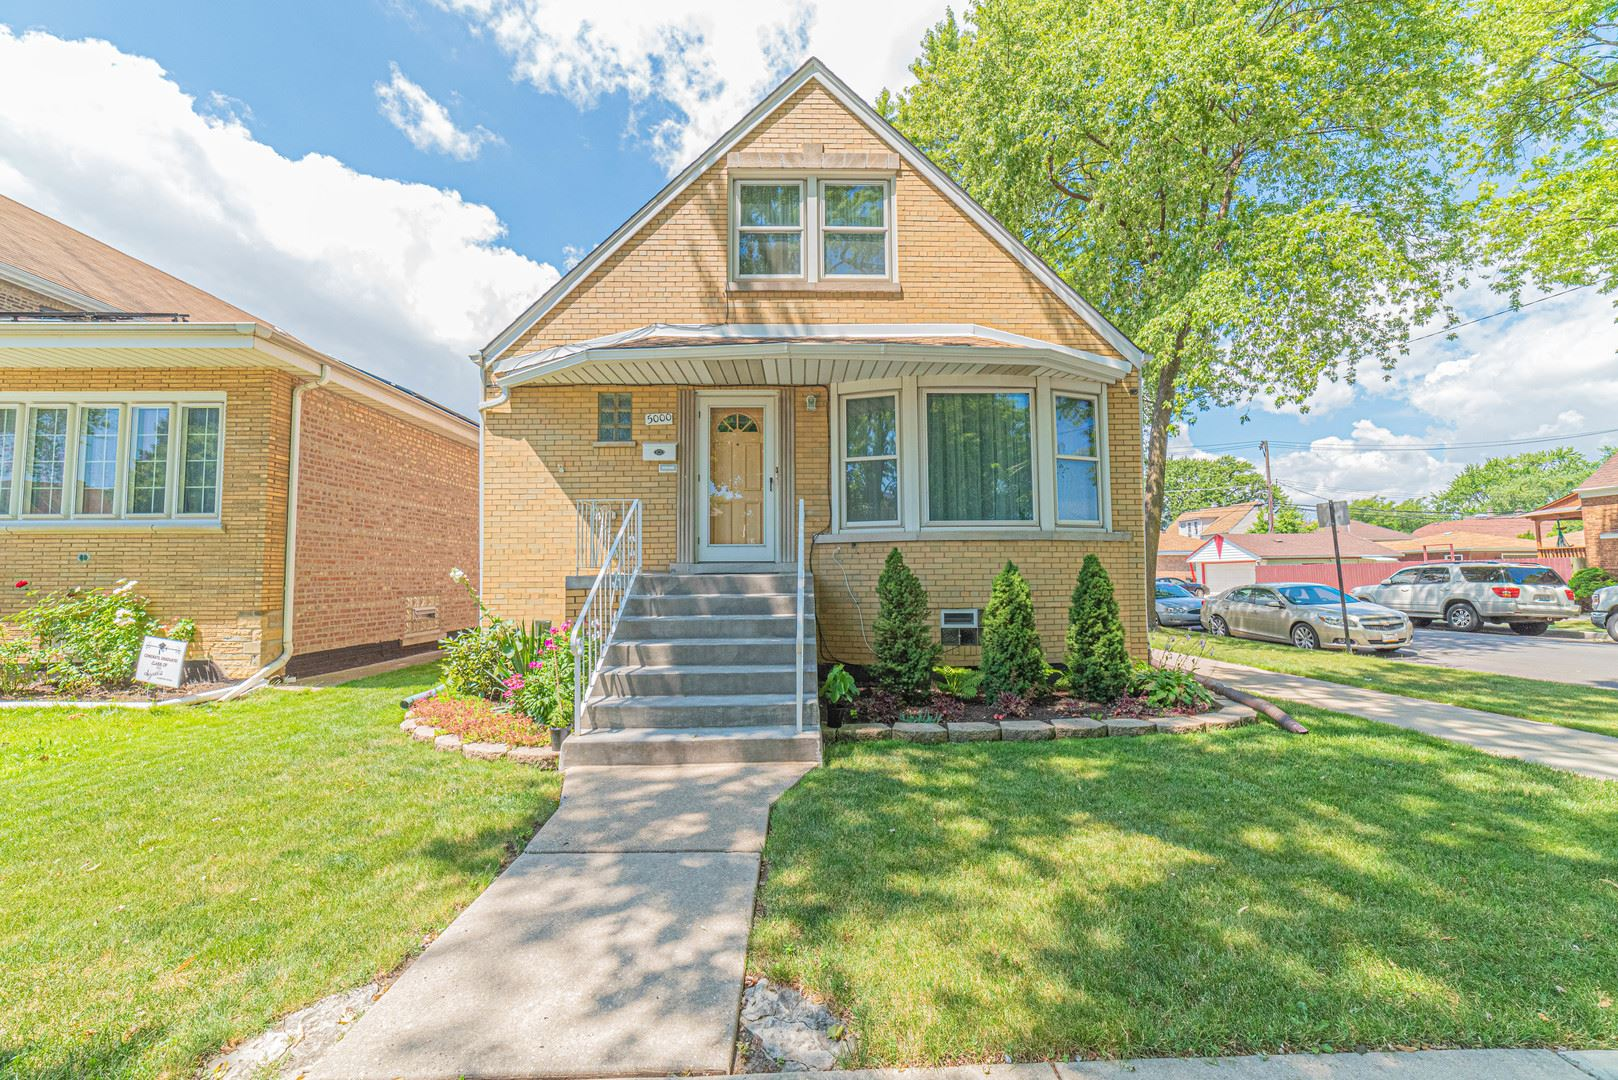 5000 S Kolin Avenue, Chicago, IL 60632 - #: 10780371